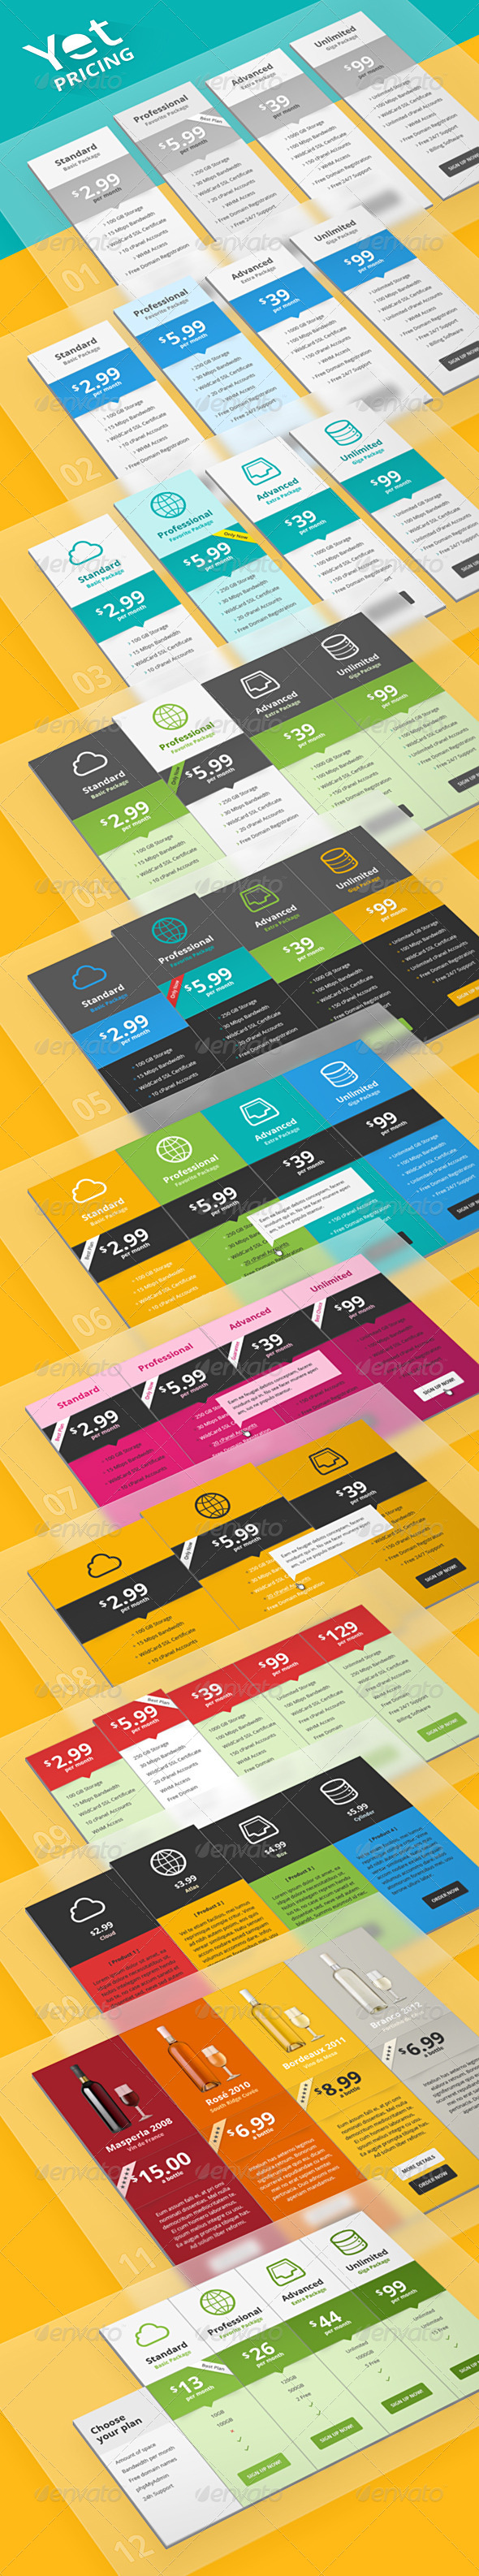 GraphicRiver Yet Pricing & Compare Tables 5224689